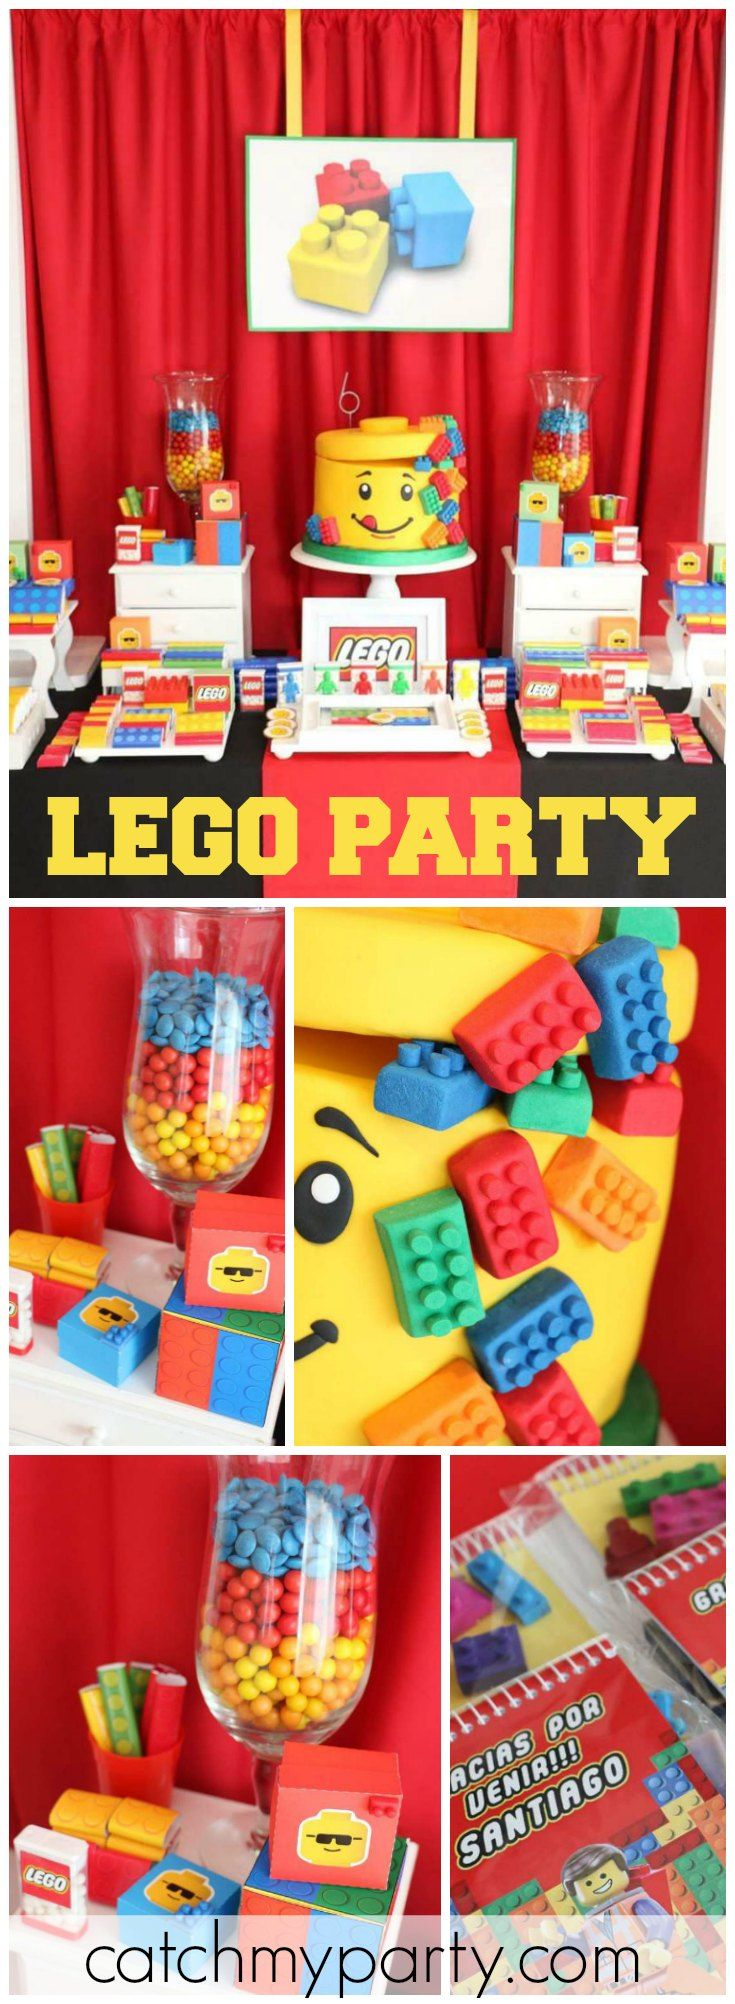 What A Fun And Colorful Lego Birthday Party See More Ideas At CatchMyParty